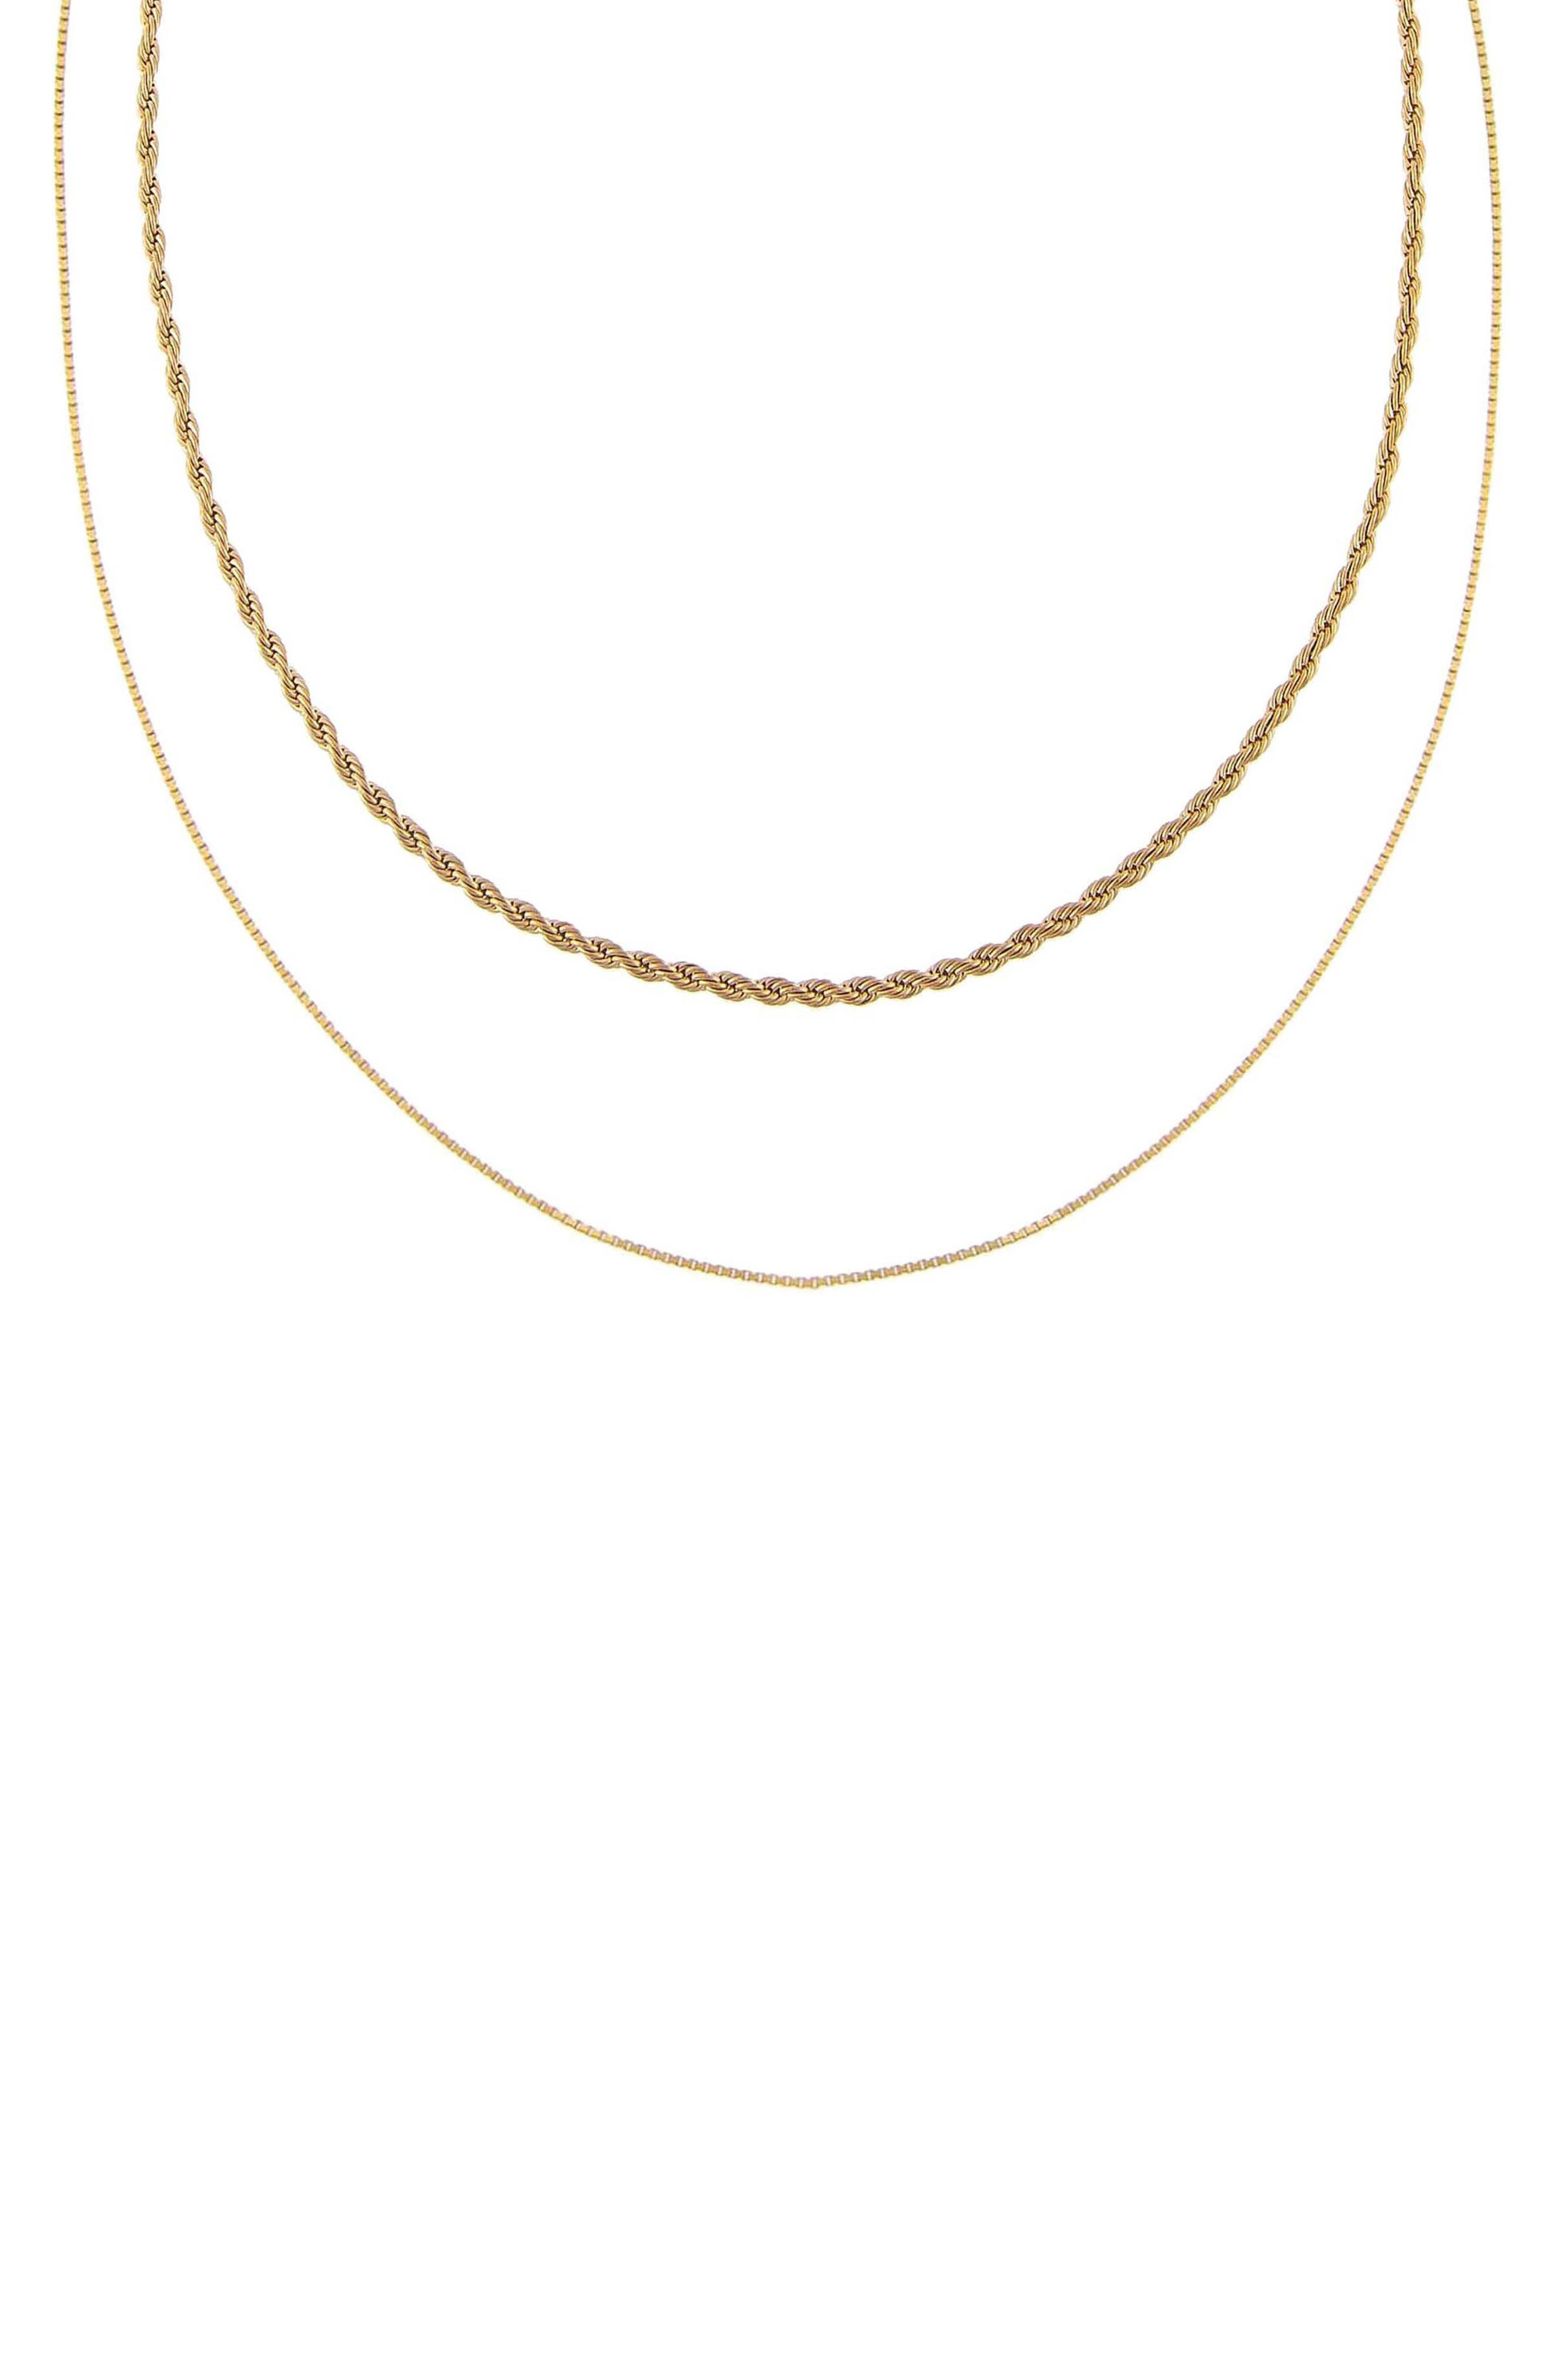 Women's Adina's Jewels Double Chain Link Necklace